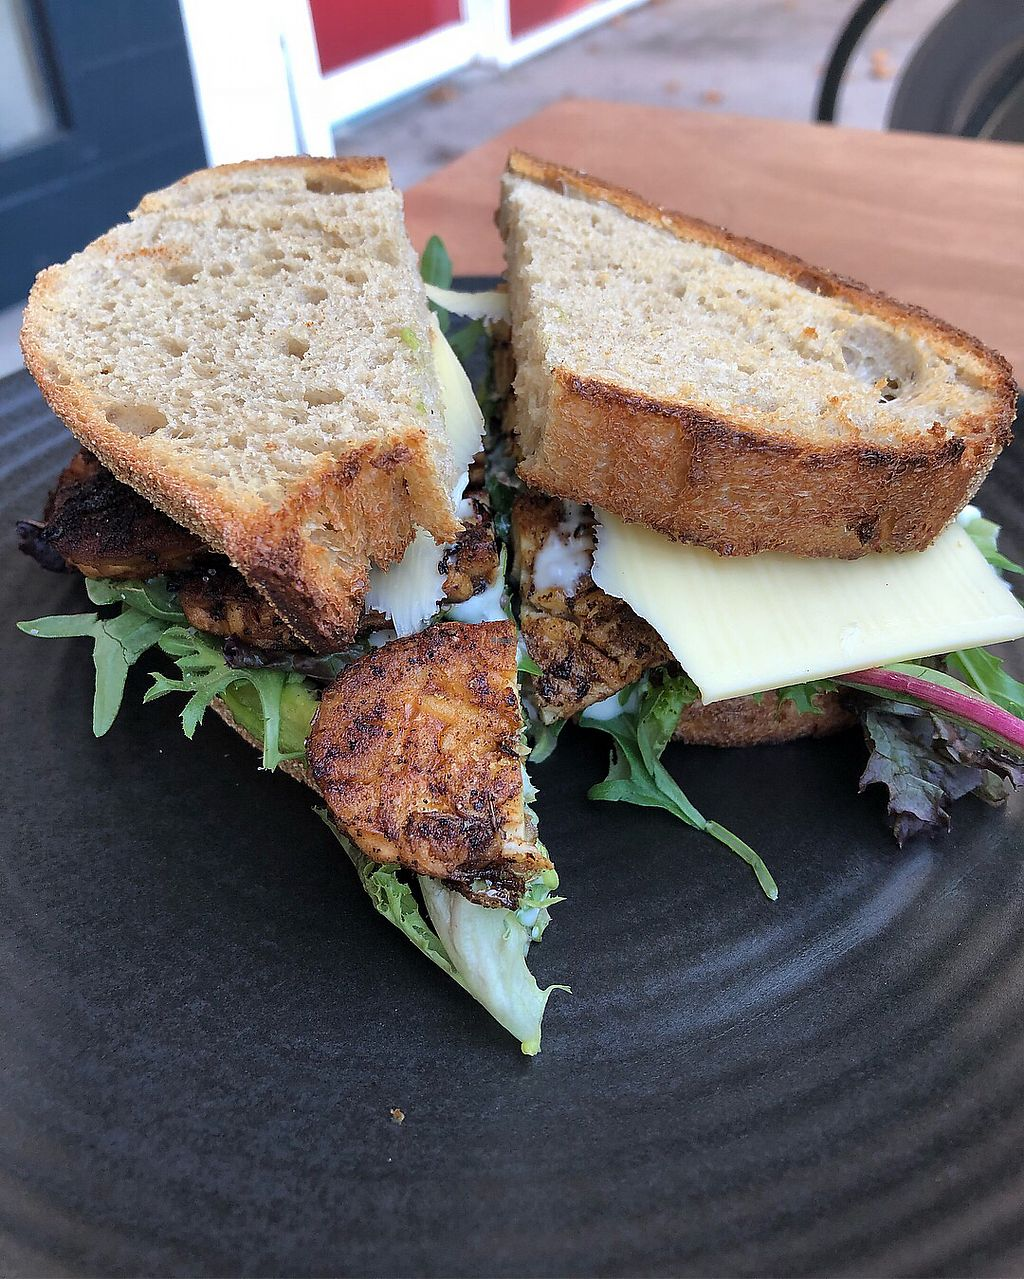 """Photo of One for the Crow  by <a href=""""/members/profile/ClaireMelanie"""">ClaireMelanie</a> <br/>Tempeh bacon, lettuce, cheese and avocado with sourdough  <br/> March 4, 2018  - <a href='/contact/abuse/image/112836/366490'>Report</a>"""